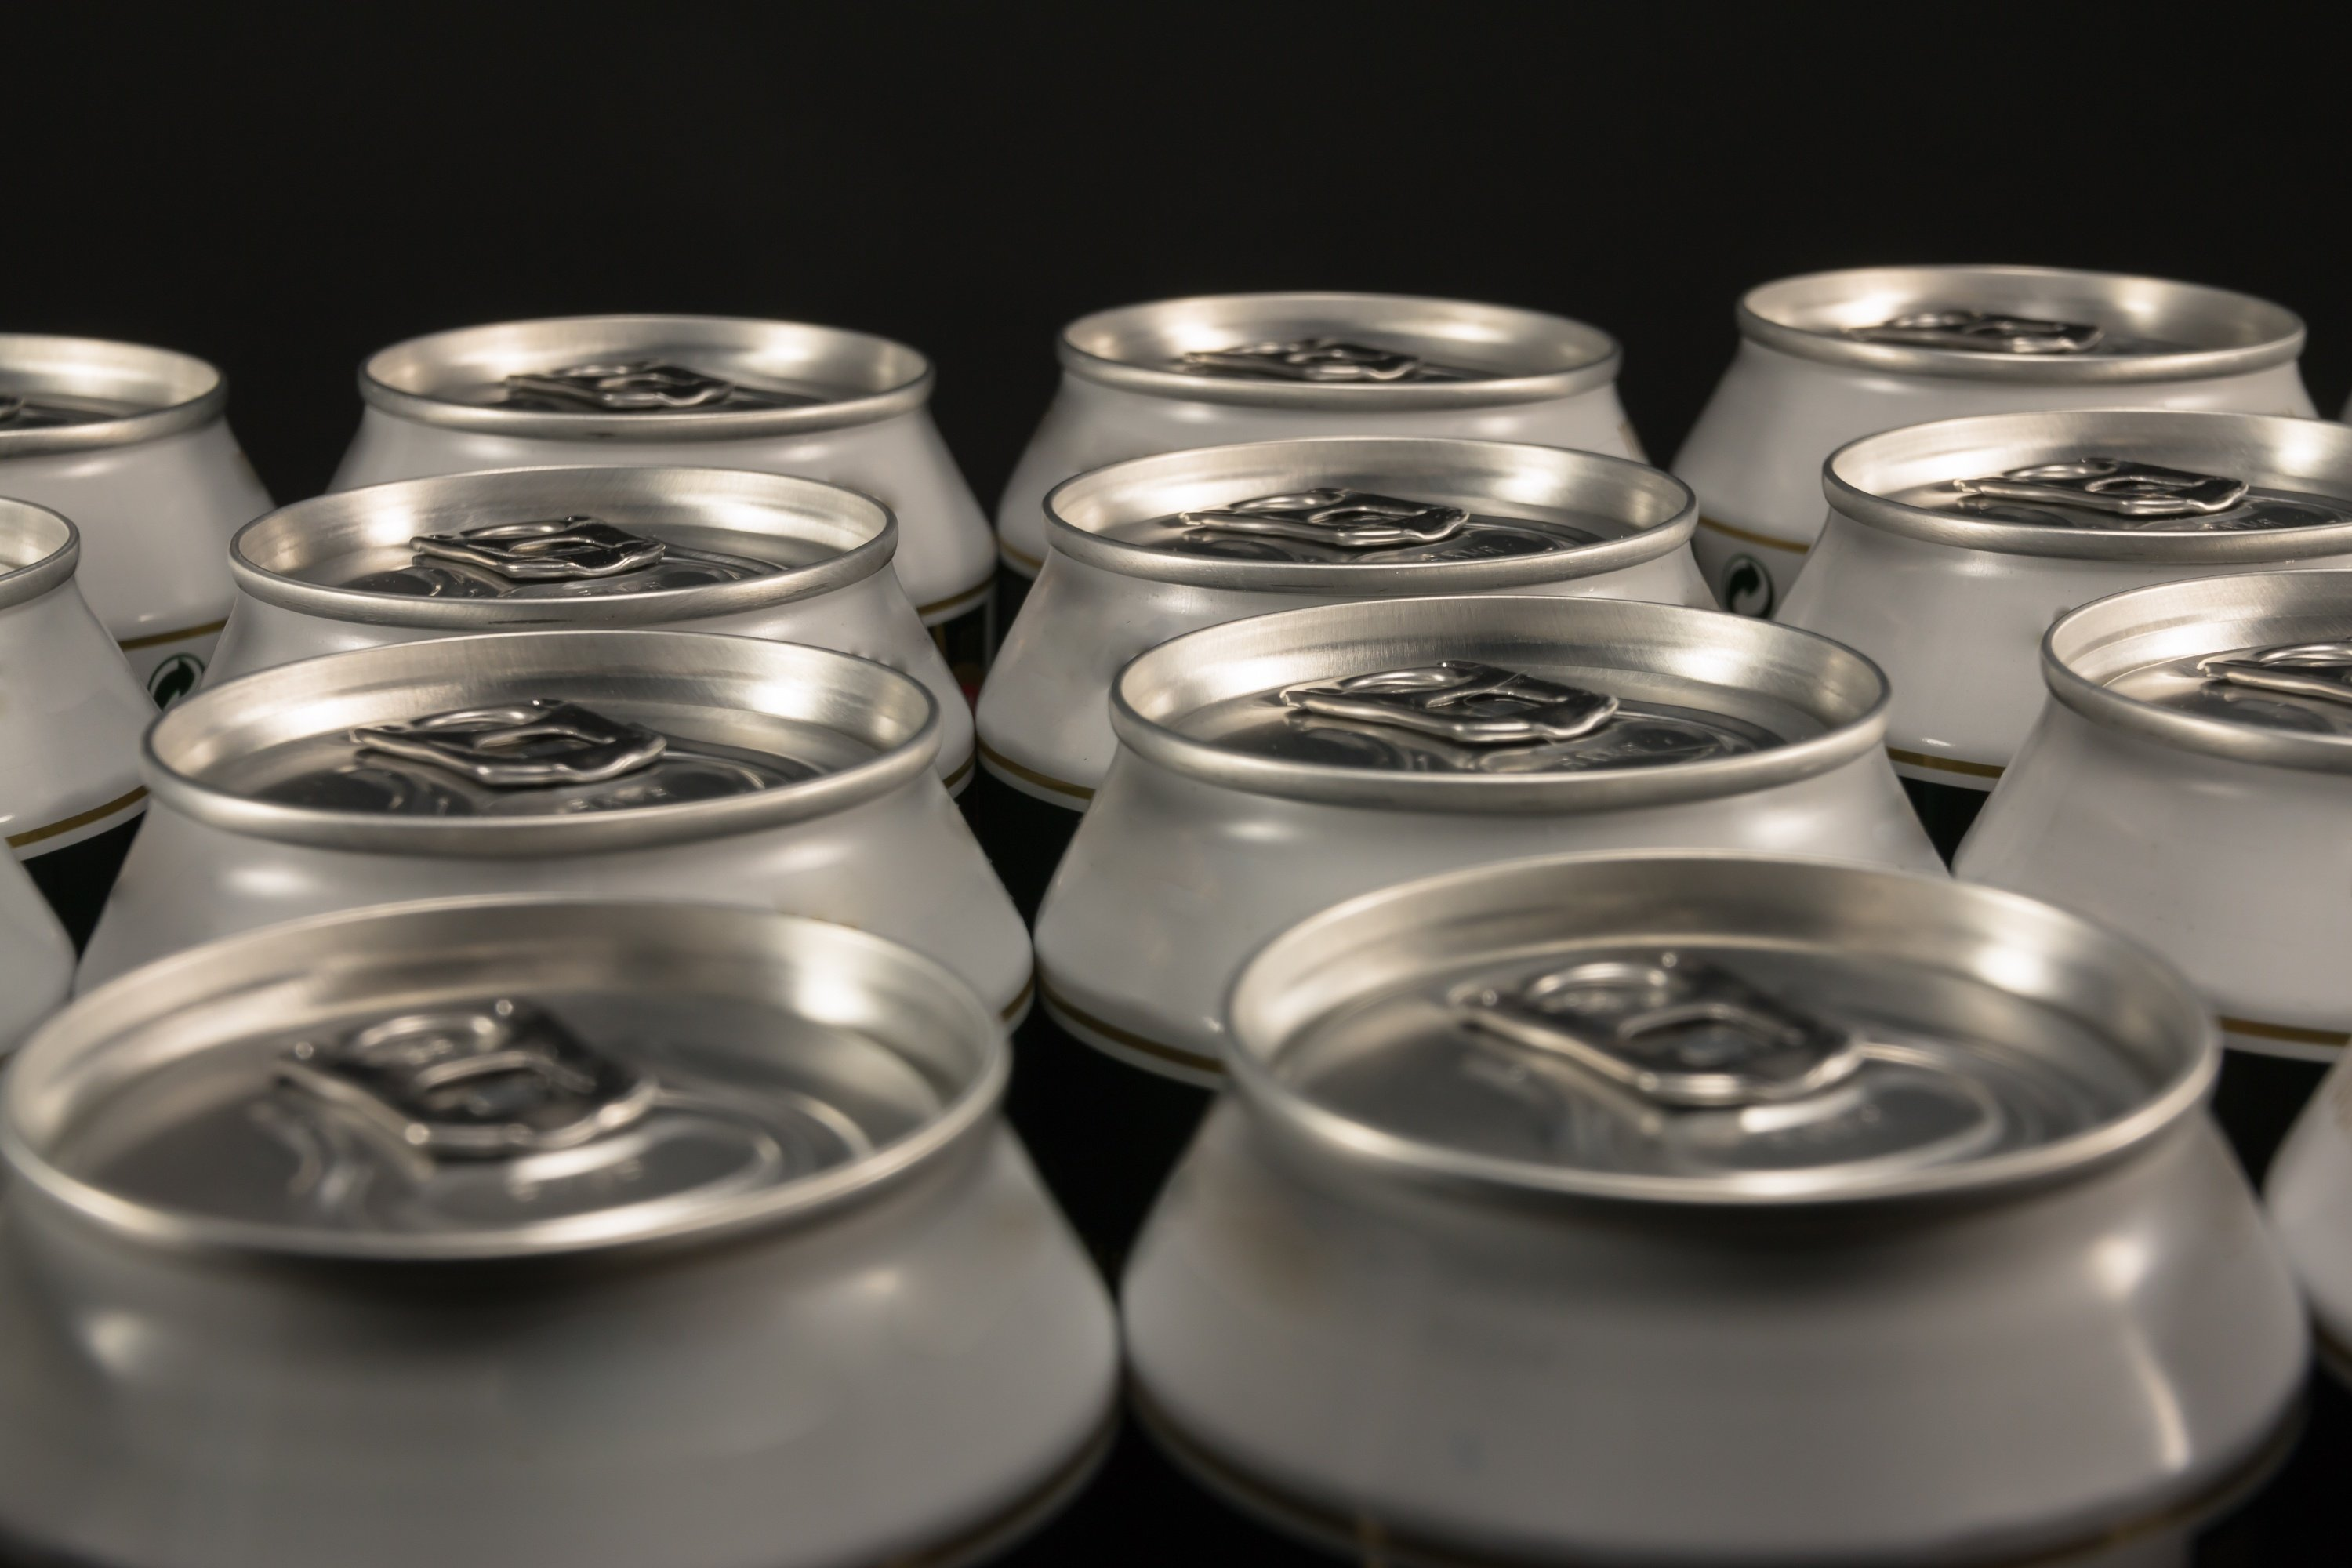 bigstock-Group-Of-Aluminum-Beverage-Can-91543778.jpg